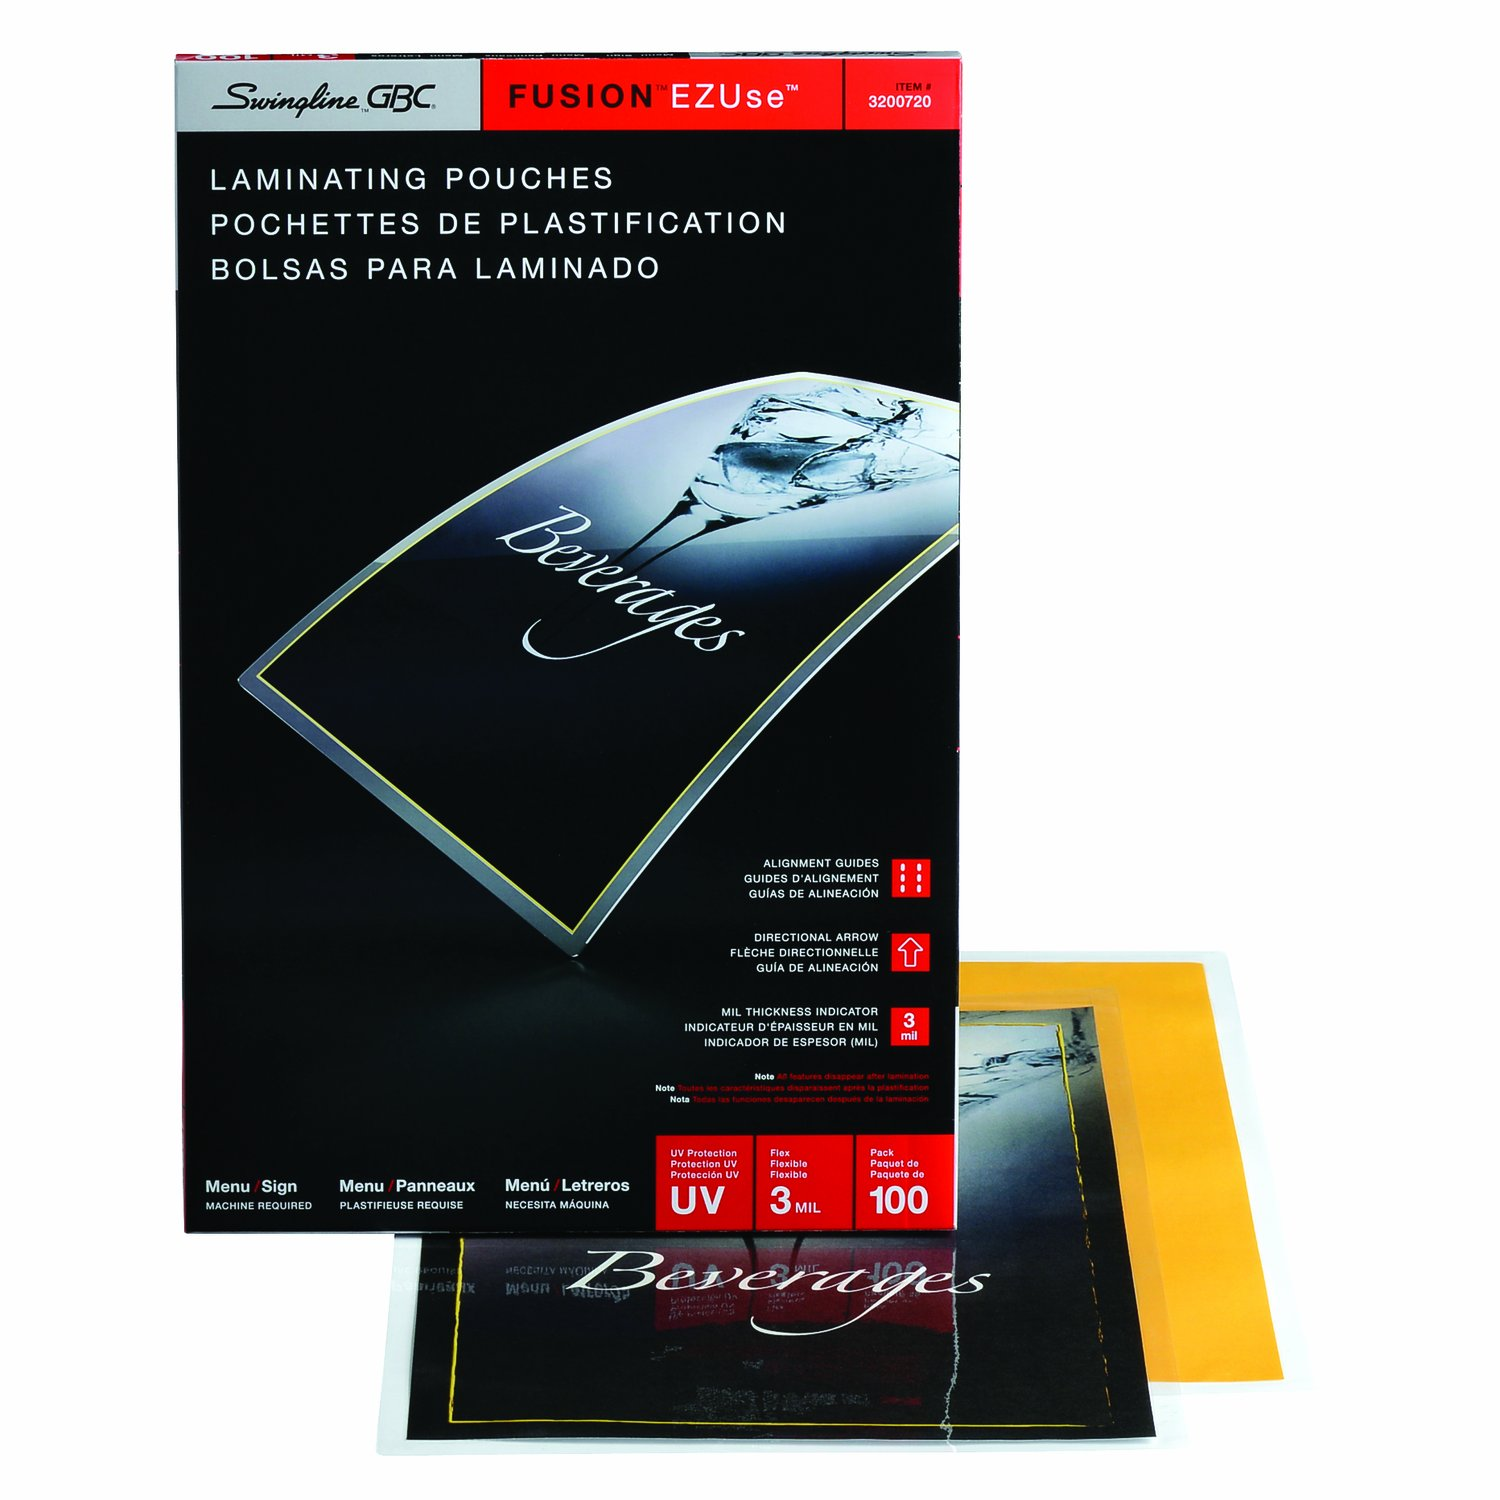 Swingline GBC Thermal Laminating Sheets / Pouches, Menu Size, 3 Mil, EZUse, 100-Count (3200720)